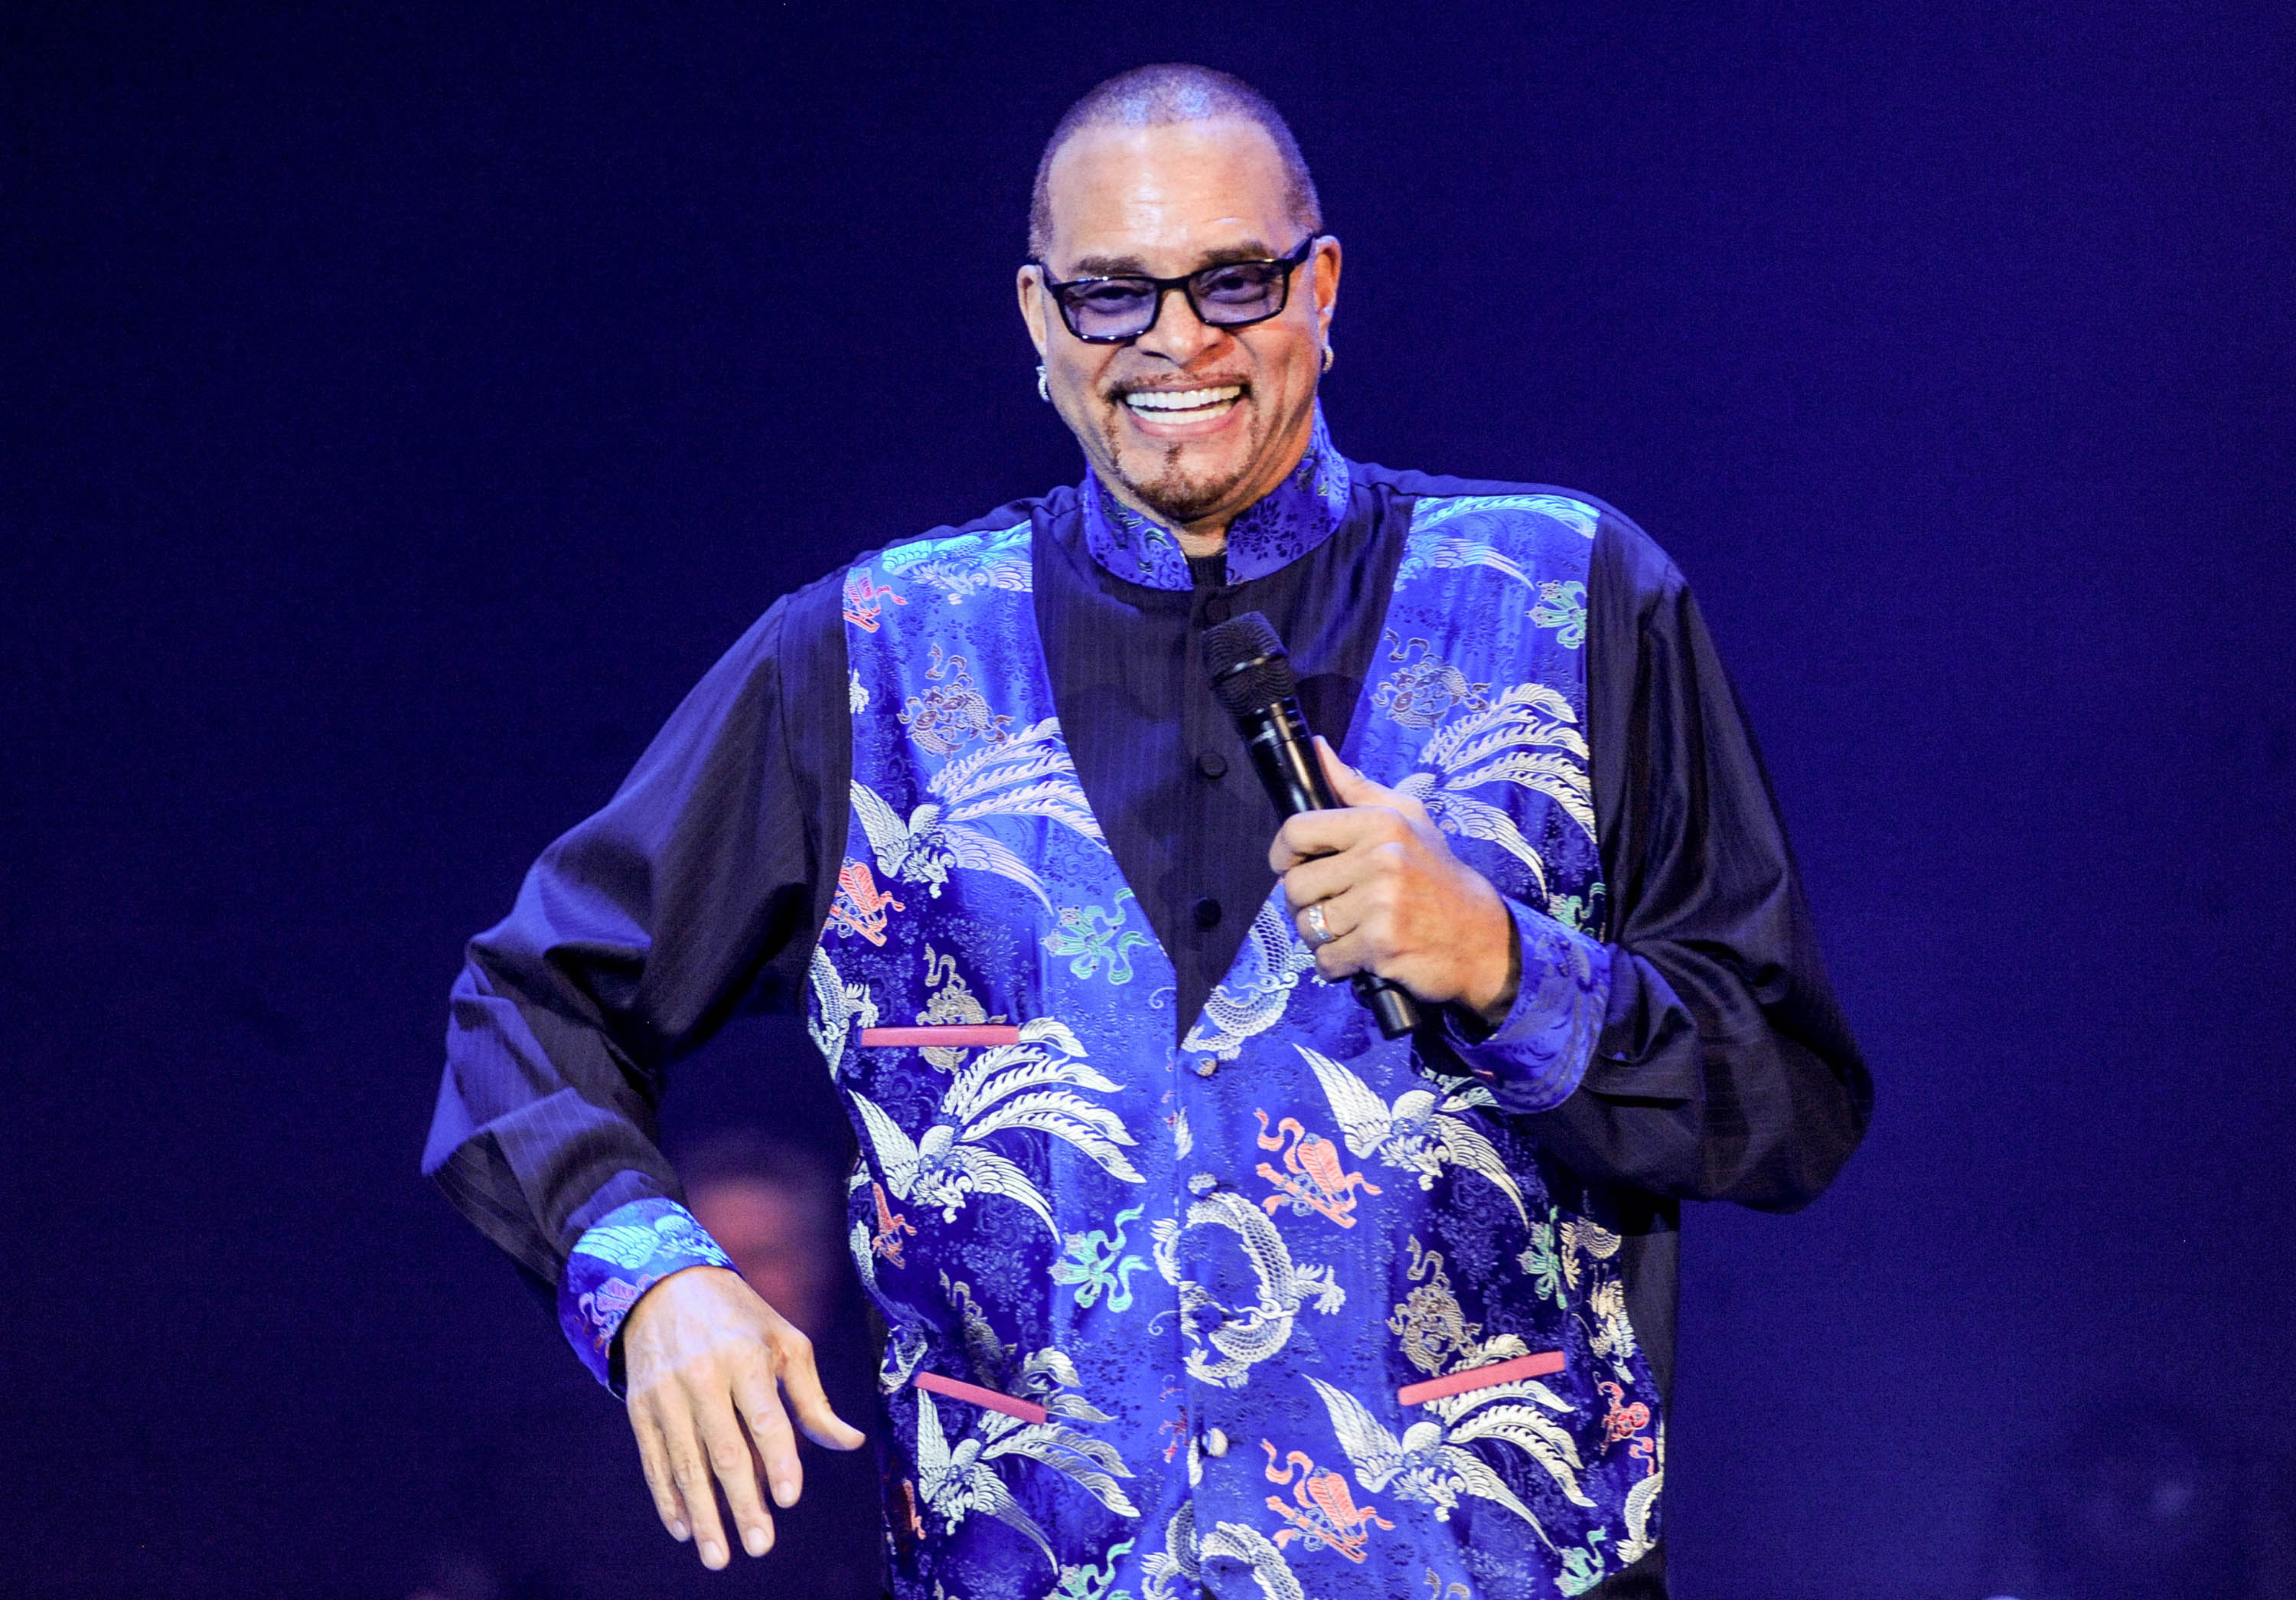 Sinbad performs on Sept. 26, 2015 in Toronto, Canada.